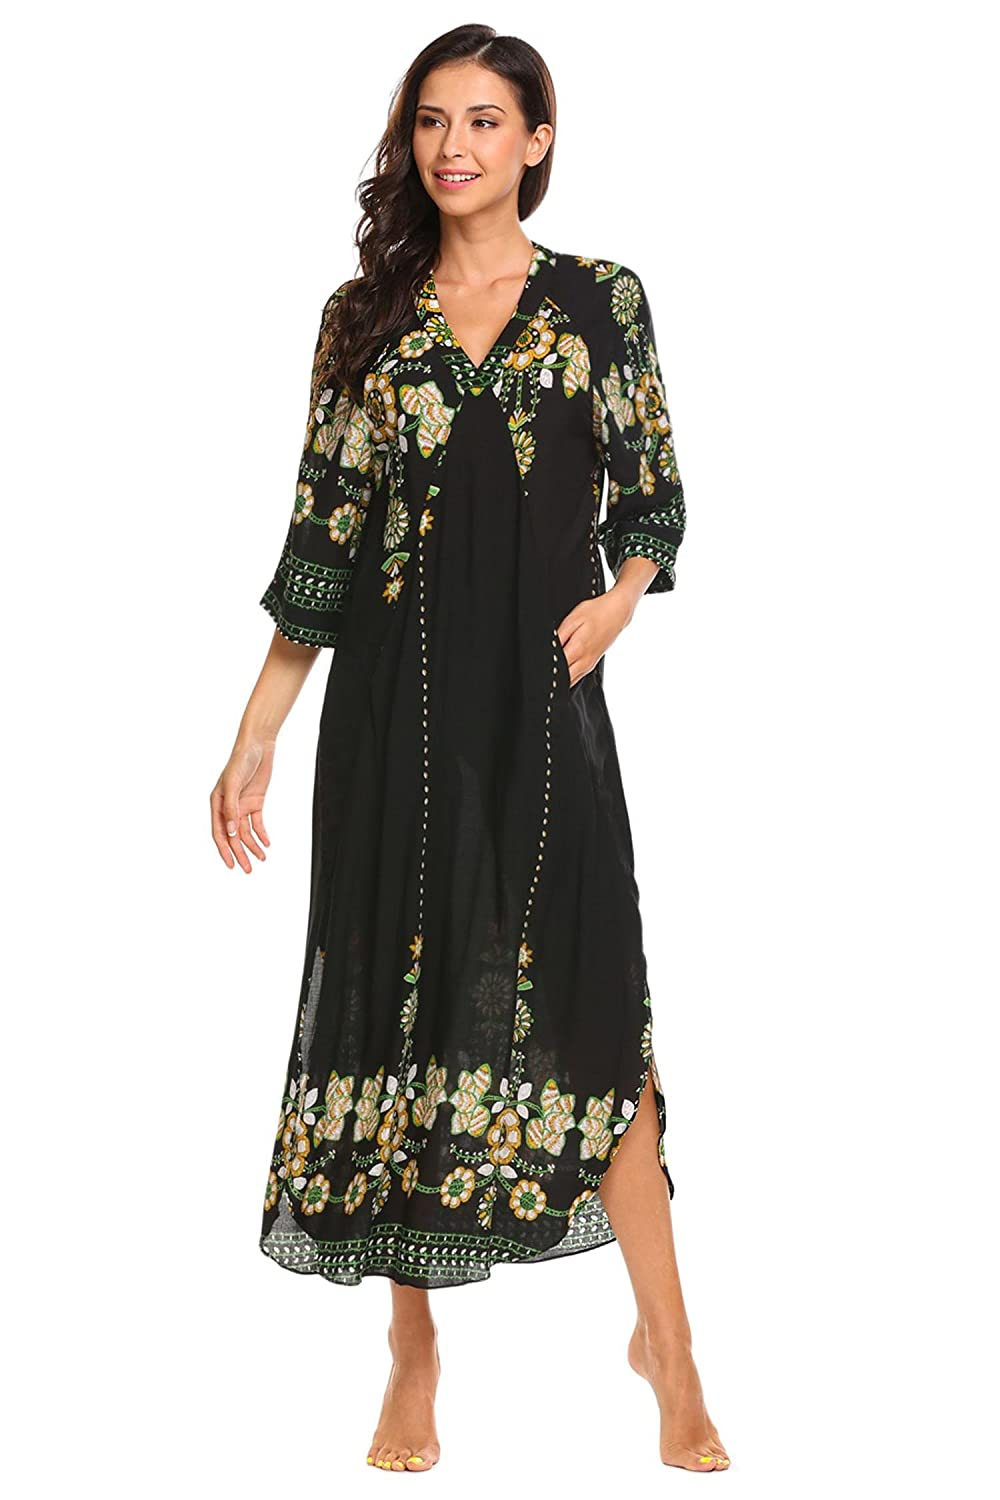 ADOME Women Nightdress Cotton Floral Printed Nightgown Maxi Dresses Pullover Loose Lounging Sleepwear With a Slit Up The Side